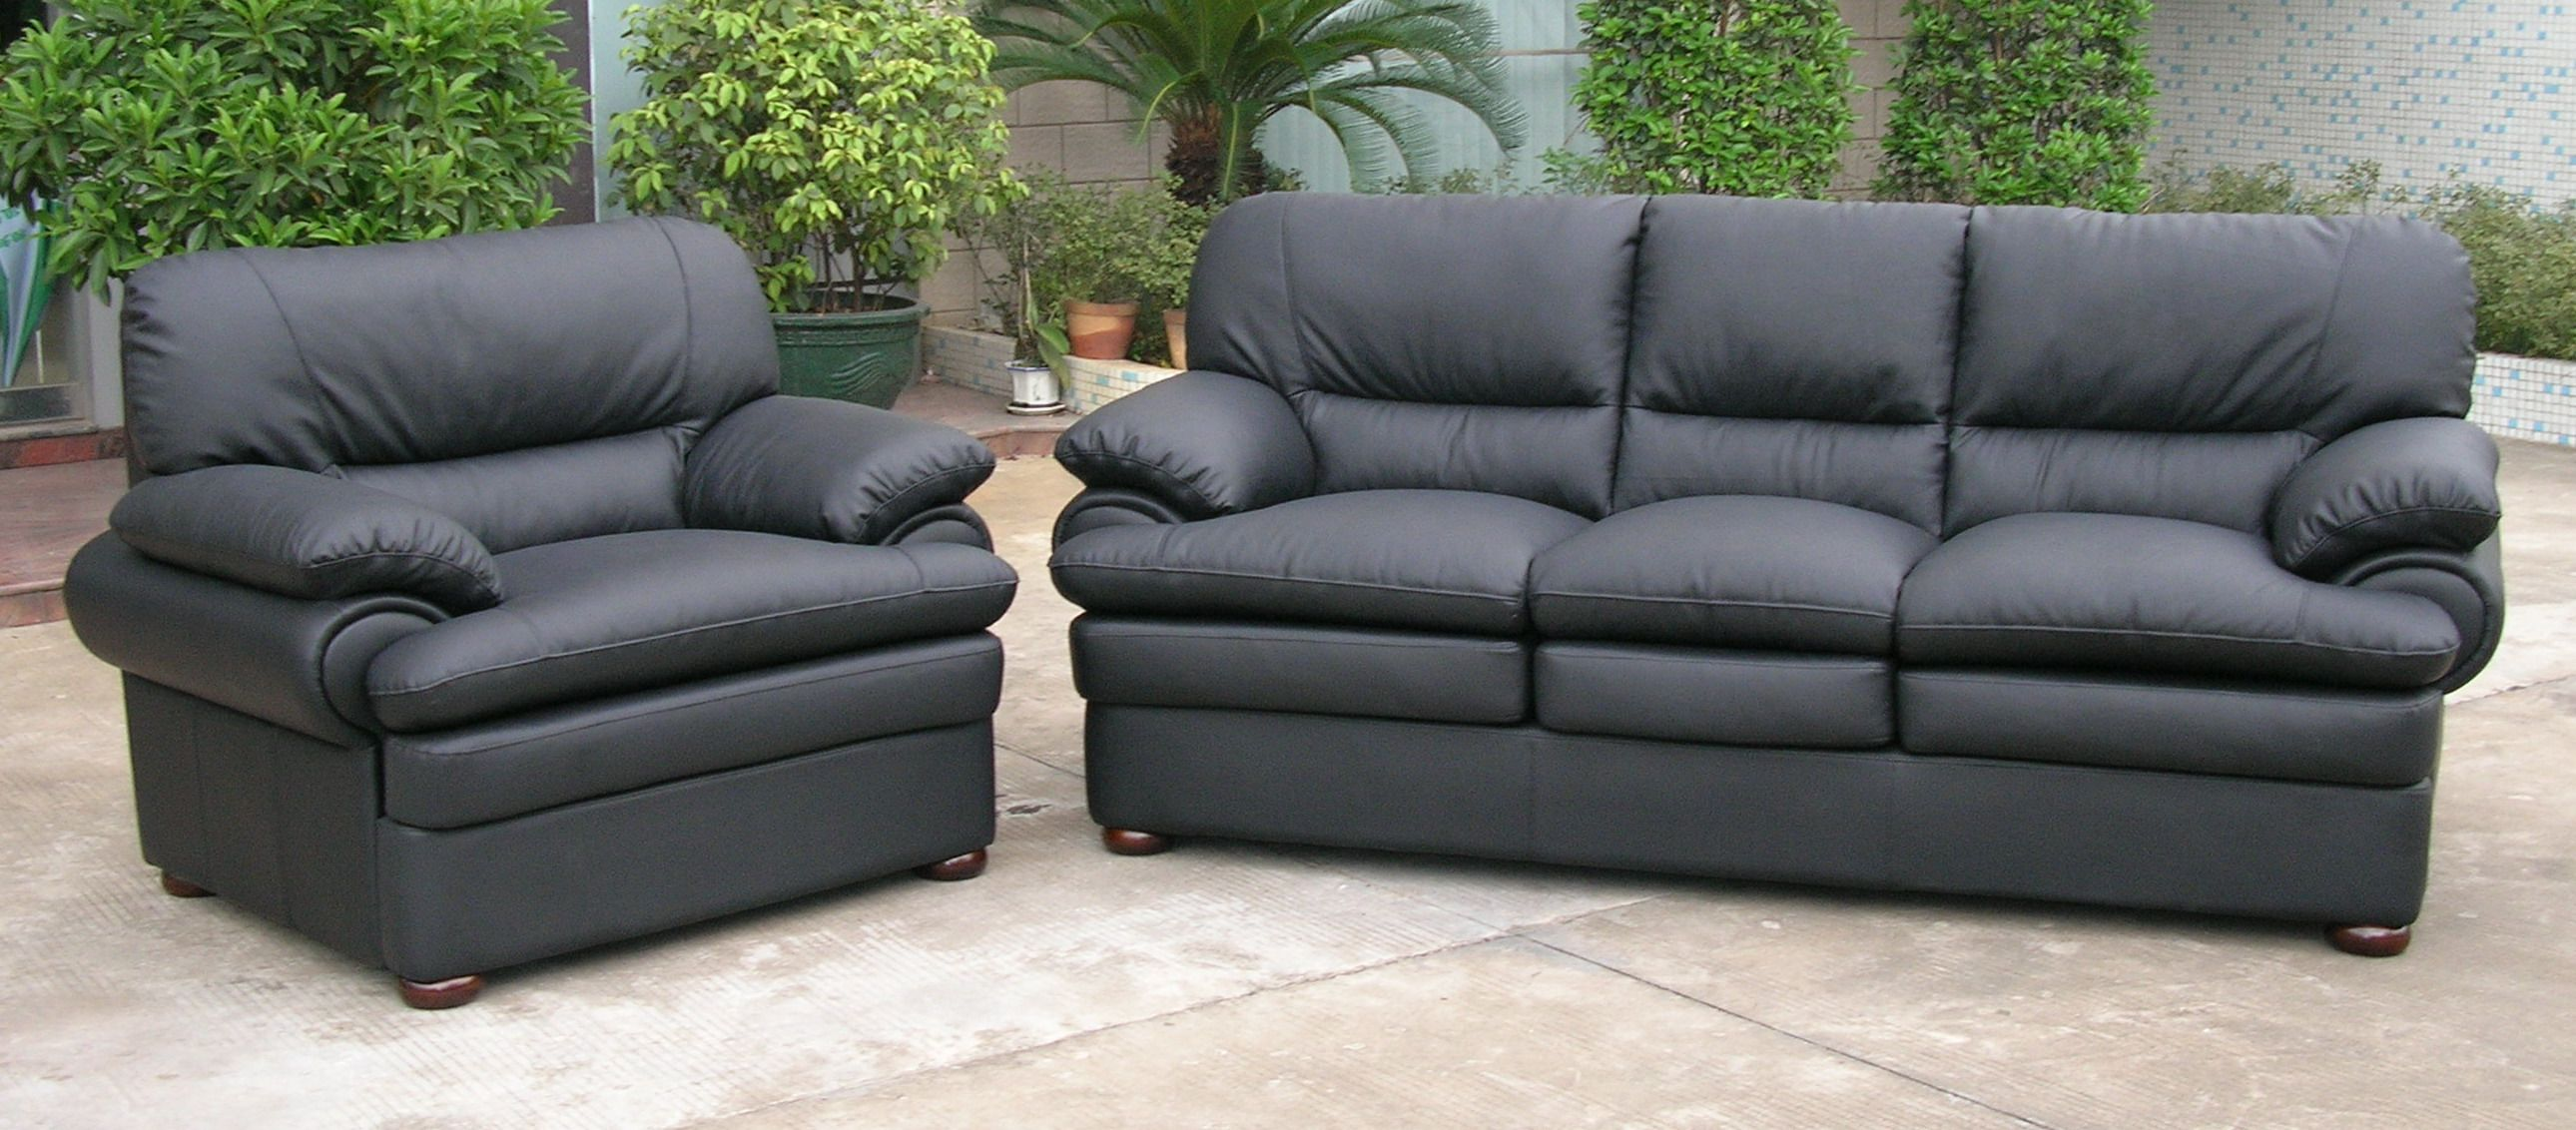 We Are Sofa Manufacturers We Make Fabric Leather Sofa Sofa Sofa Manufacturers Leather Sofa